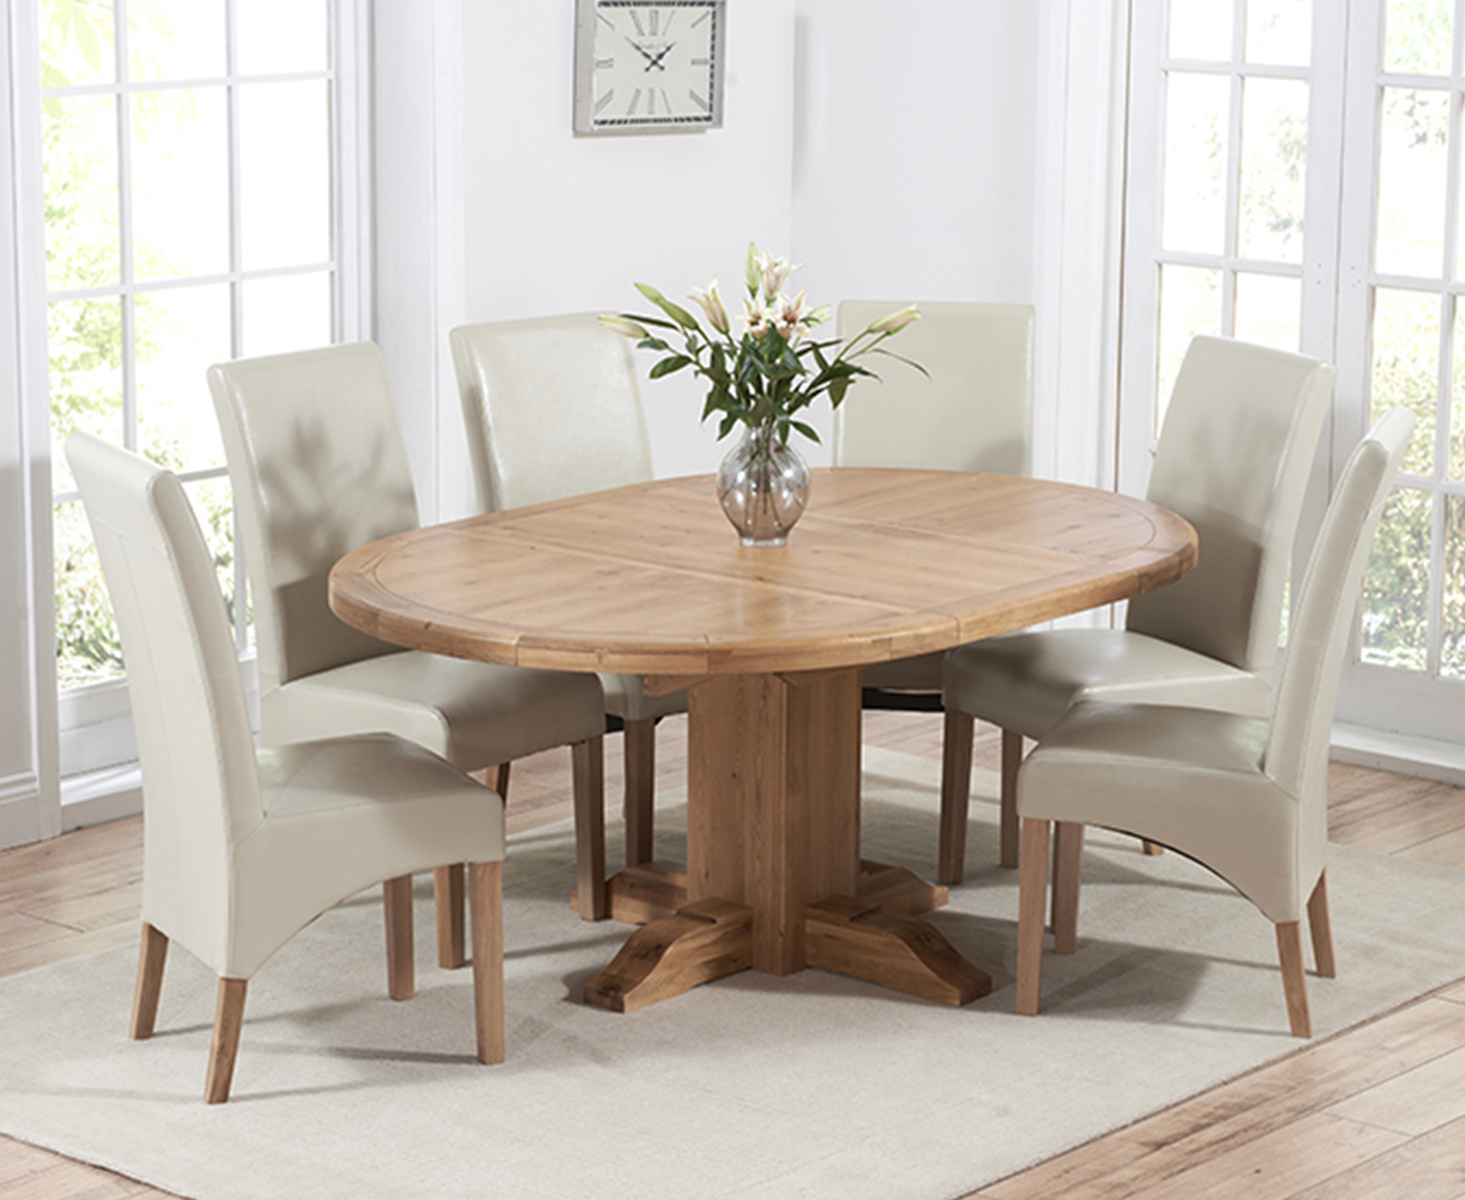 Product photograph showing Torino Solid Oak Extending Pedestal Dining Table With Cannes Chairs - Brown 4 Chairs